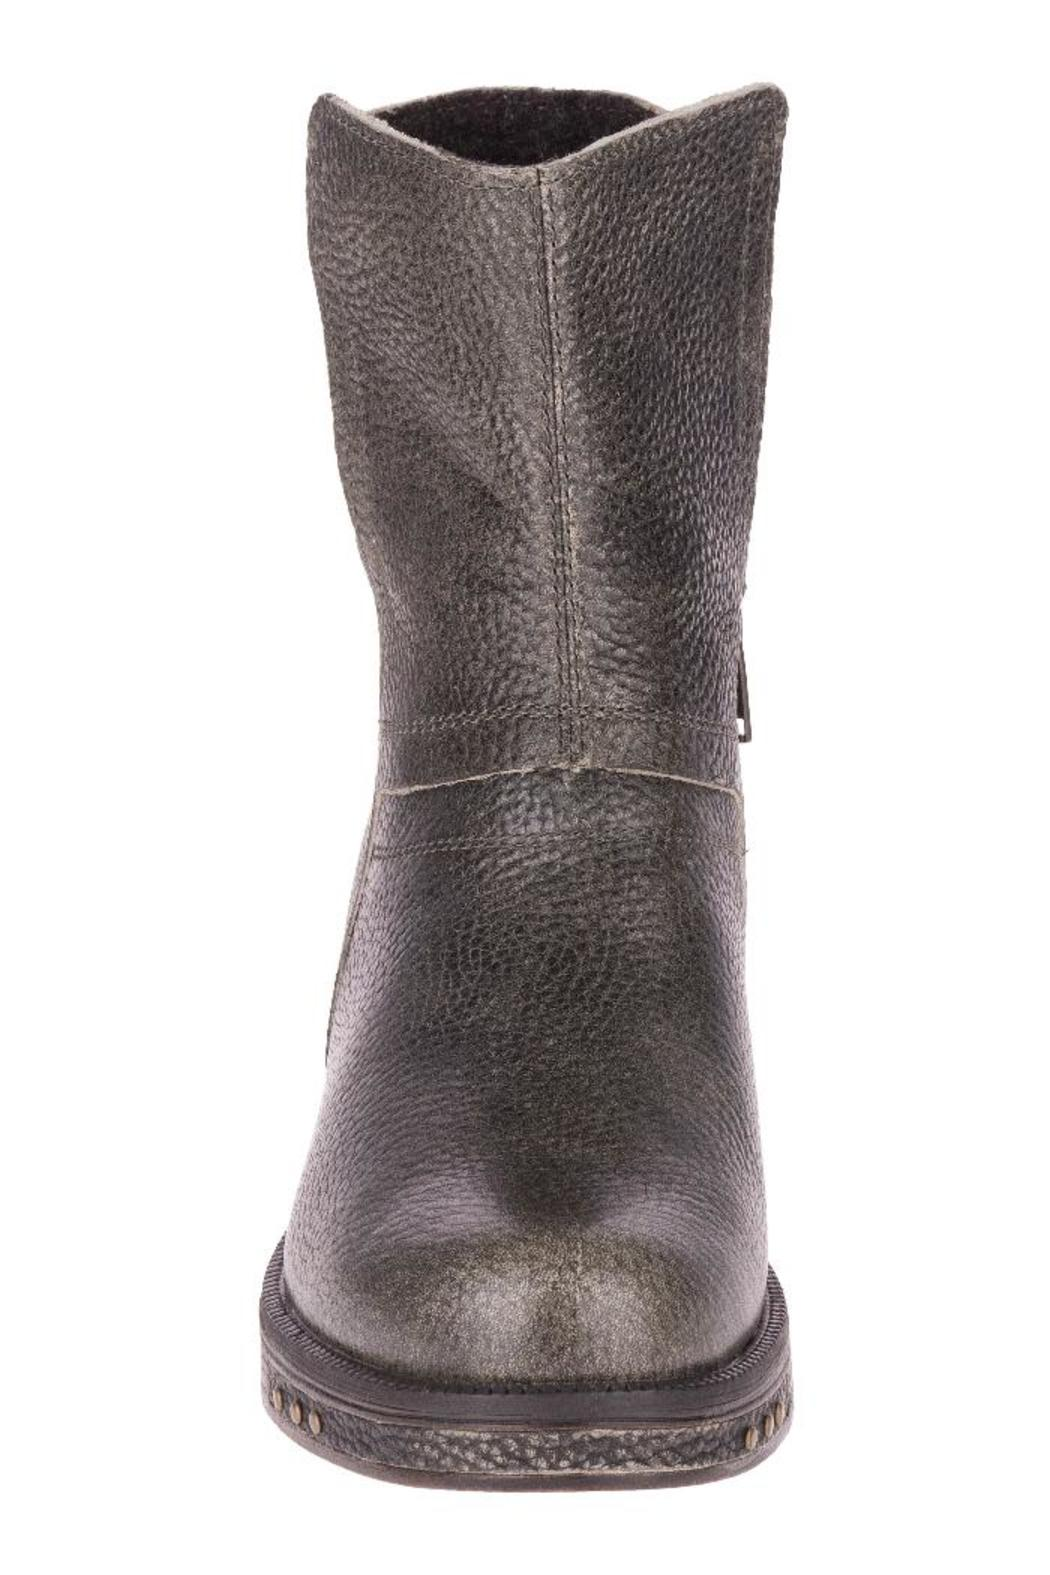 Cat Footwear Pixley Boot - Side Cropped Image